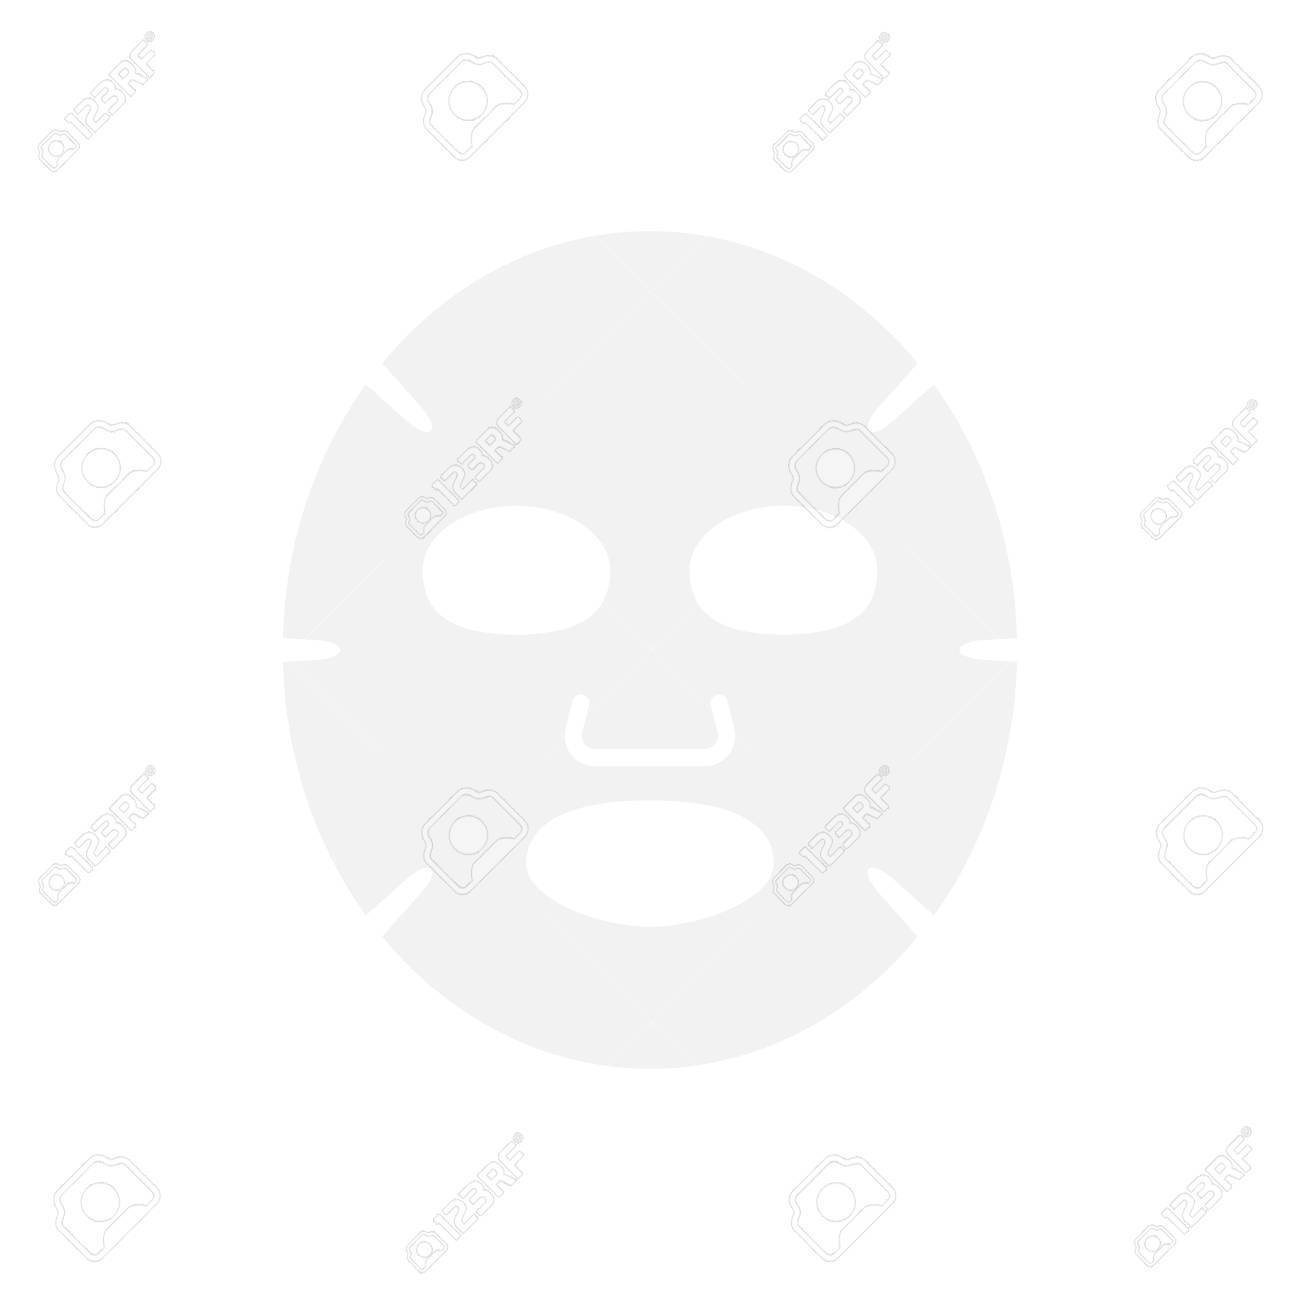 Facial mask flat icon. Medicine, cosmetology and health care. Vector illustration flat design - 86223171